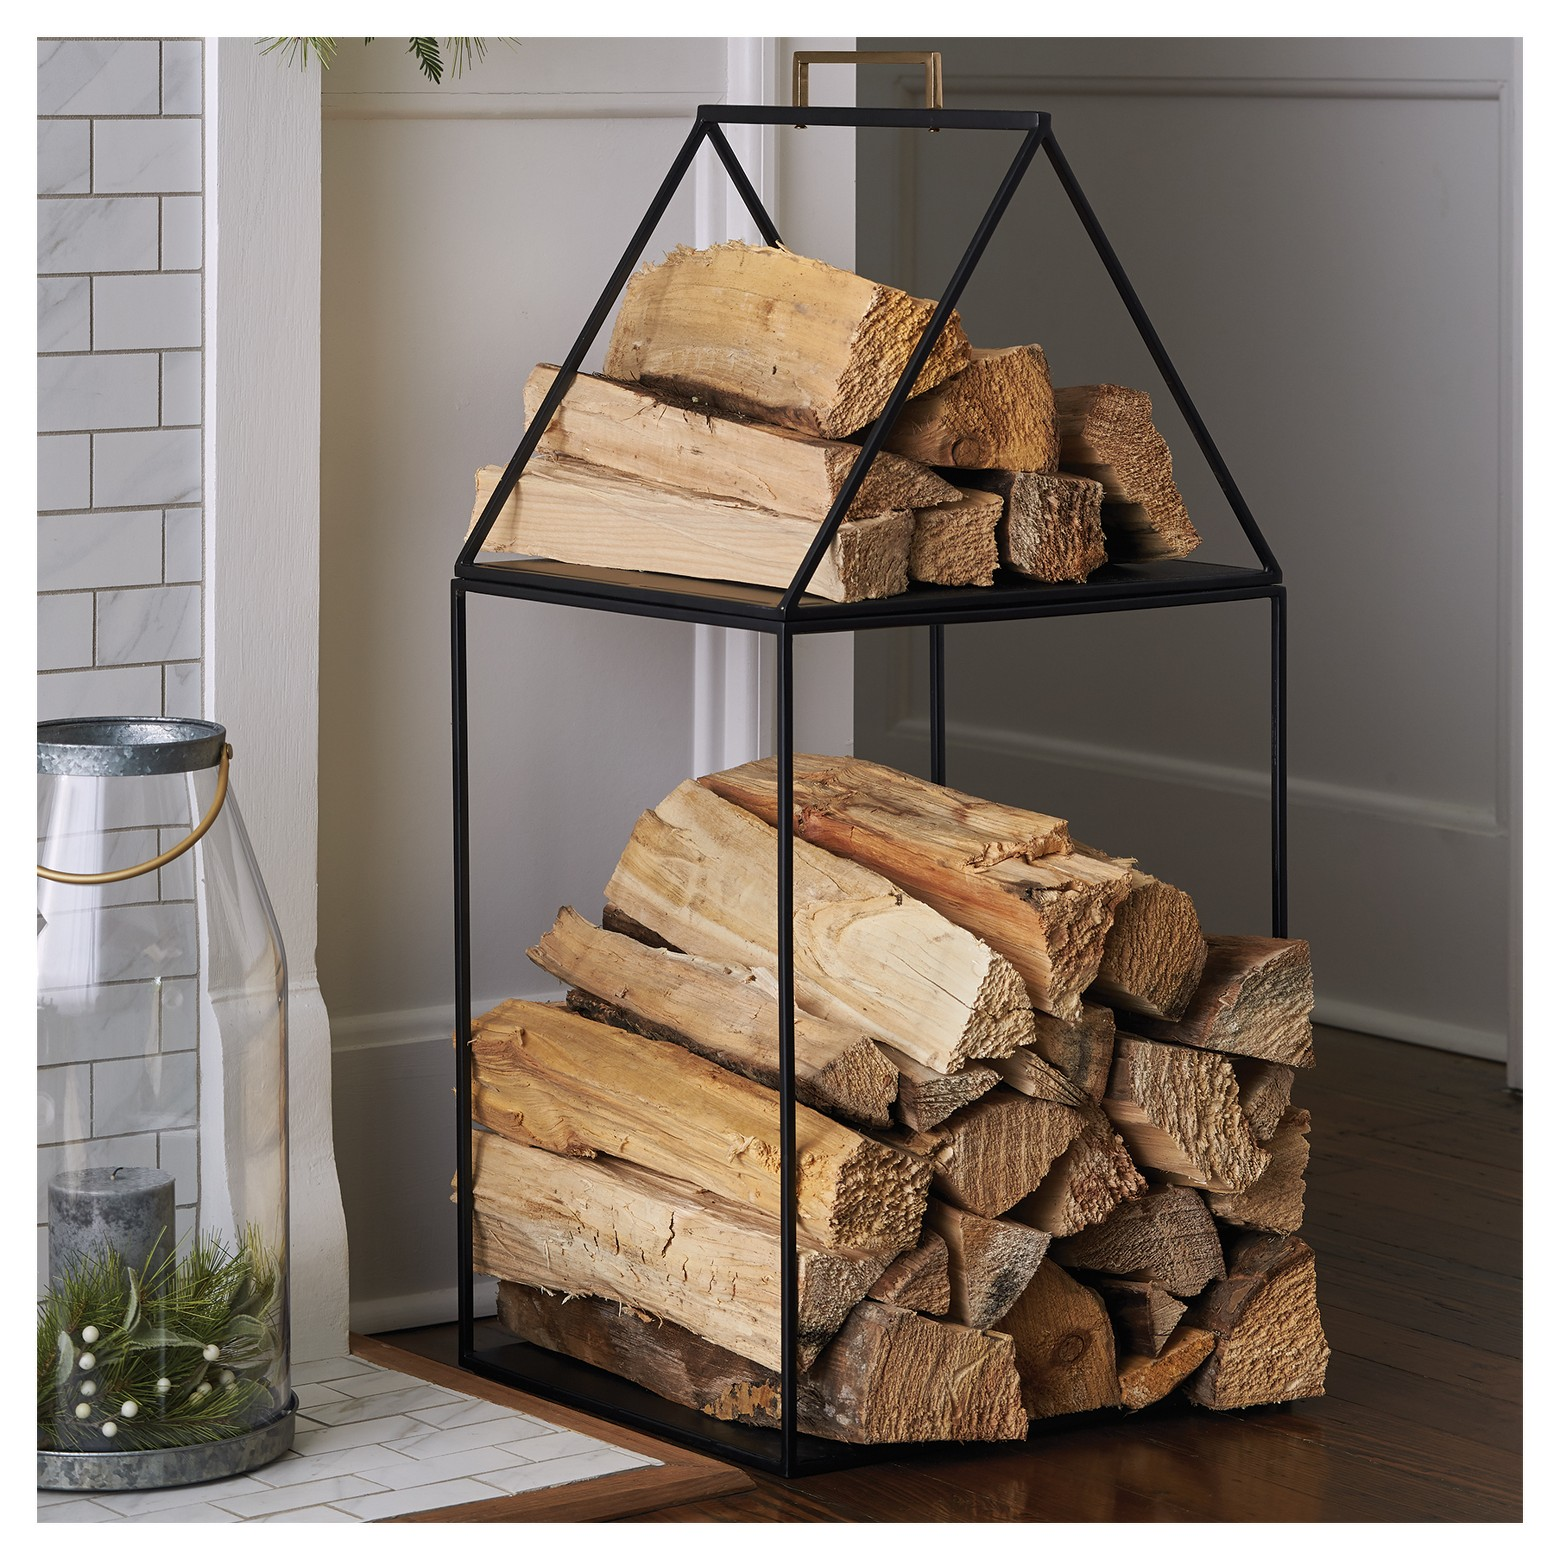 Log holder  - This log holder is the perfect piece to keep your fireplace neat but still incredibly cozy. I love the functionality of having the firewood right where you need it, without all of the mess.